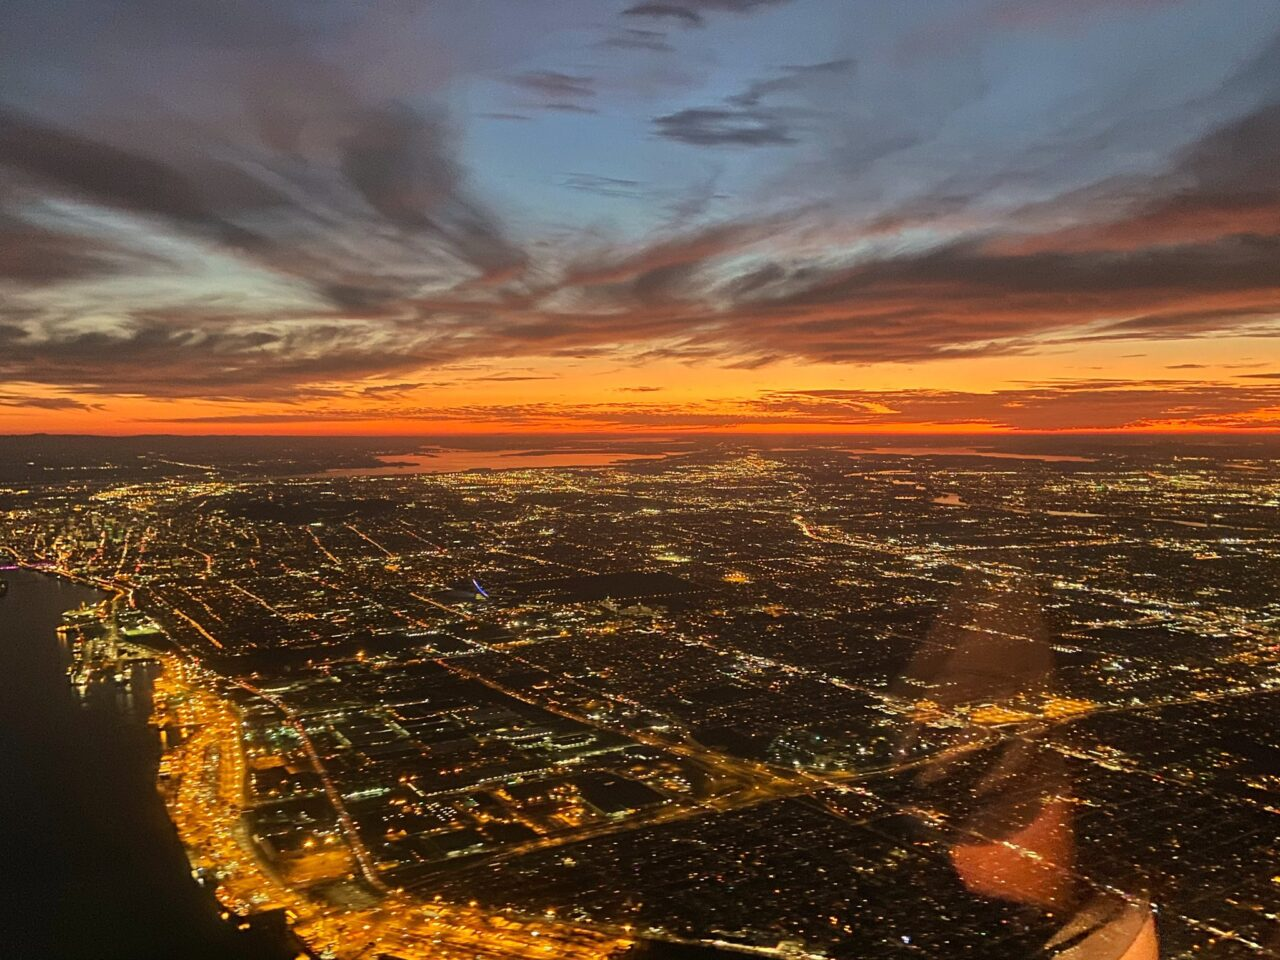 Montreal sunset from the air